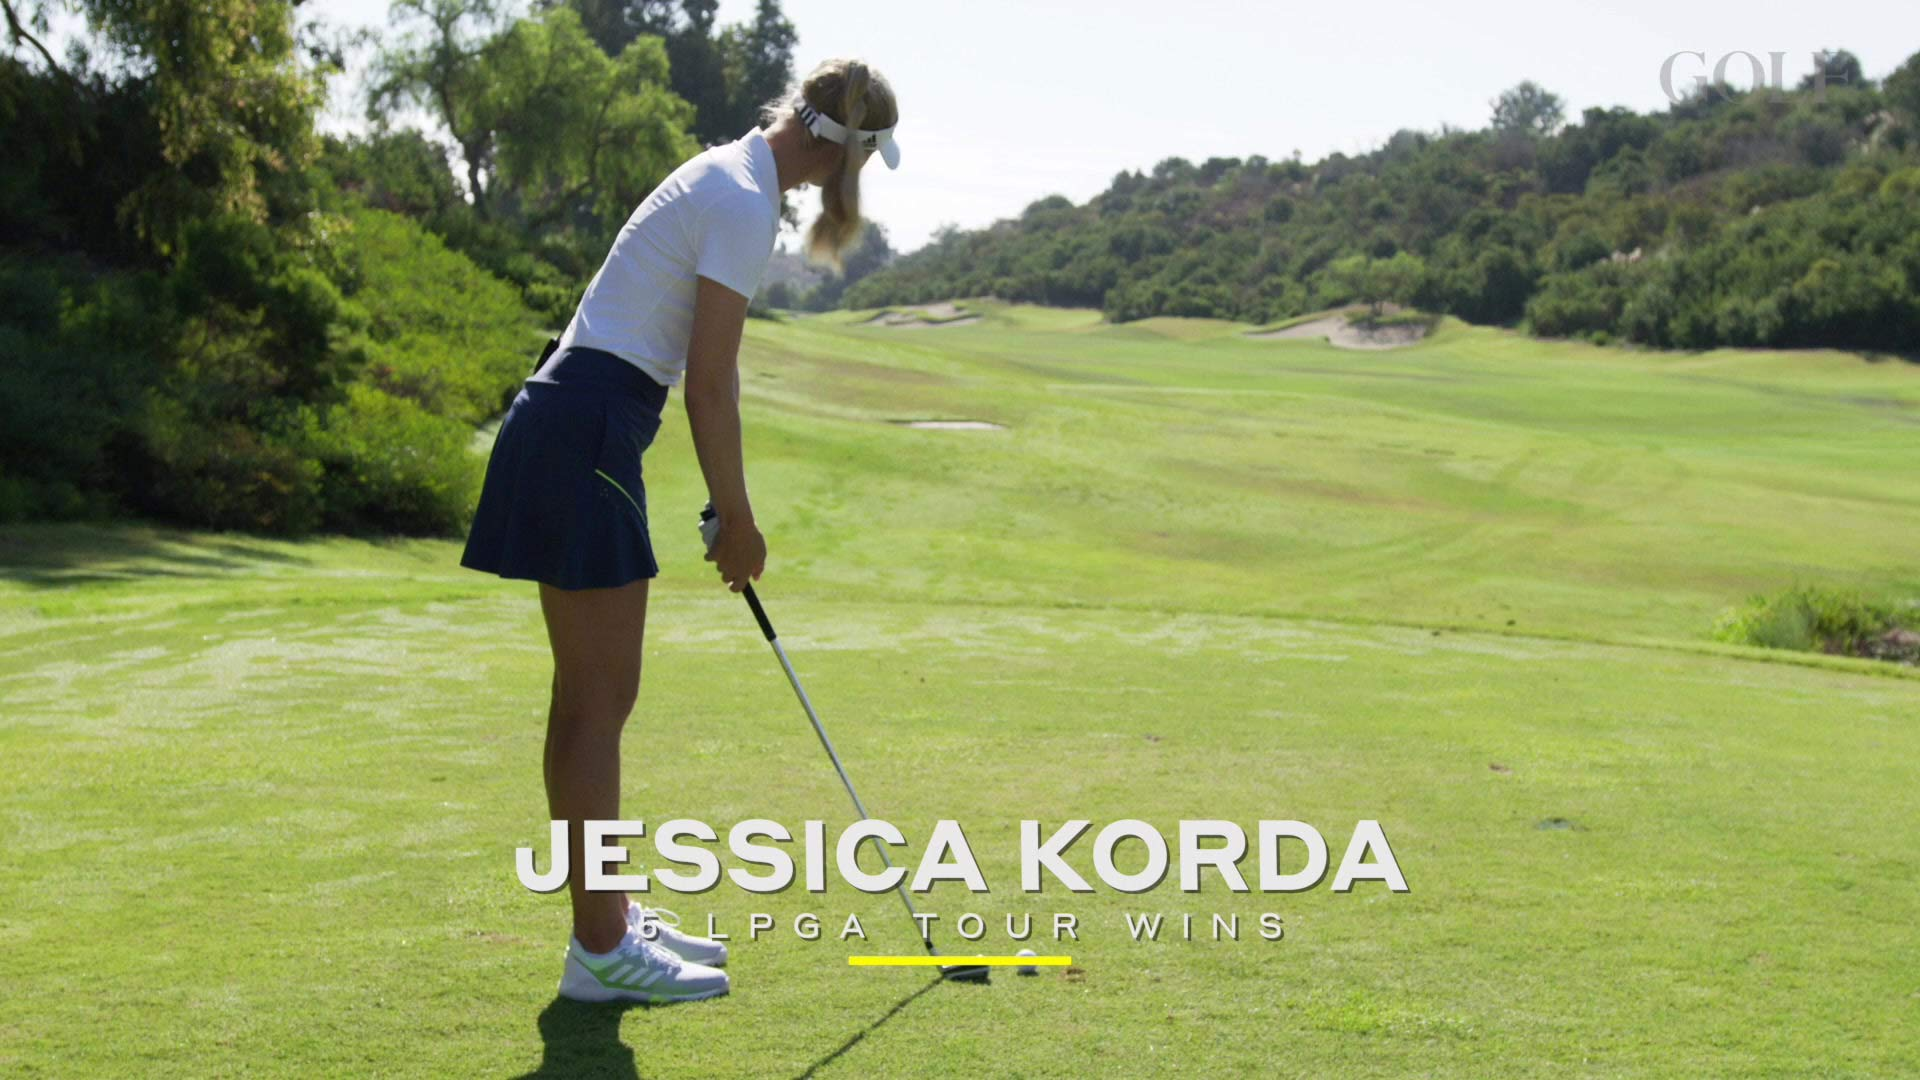 Jessica Korda: 60 Second Swing Breakdown